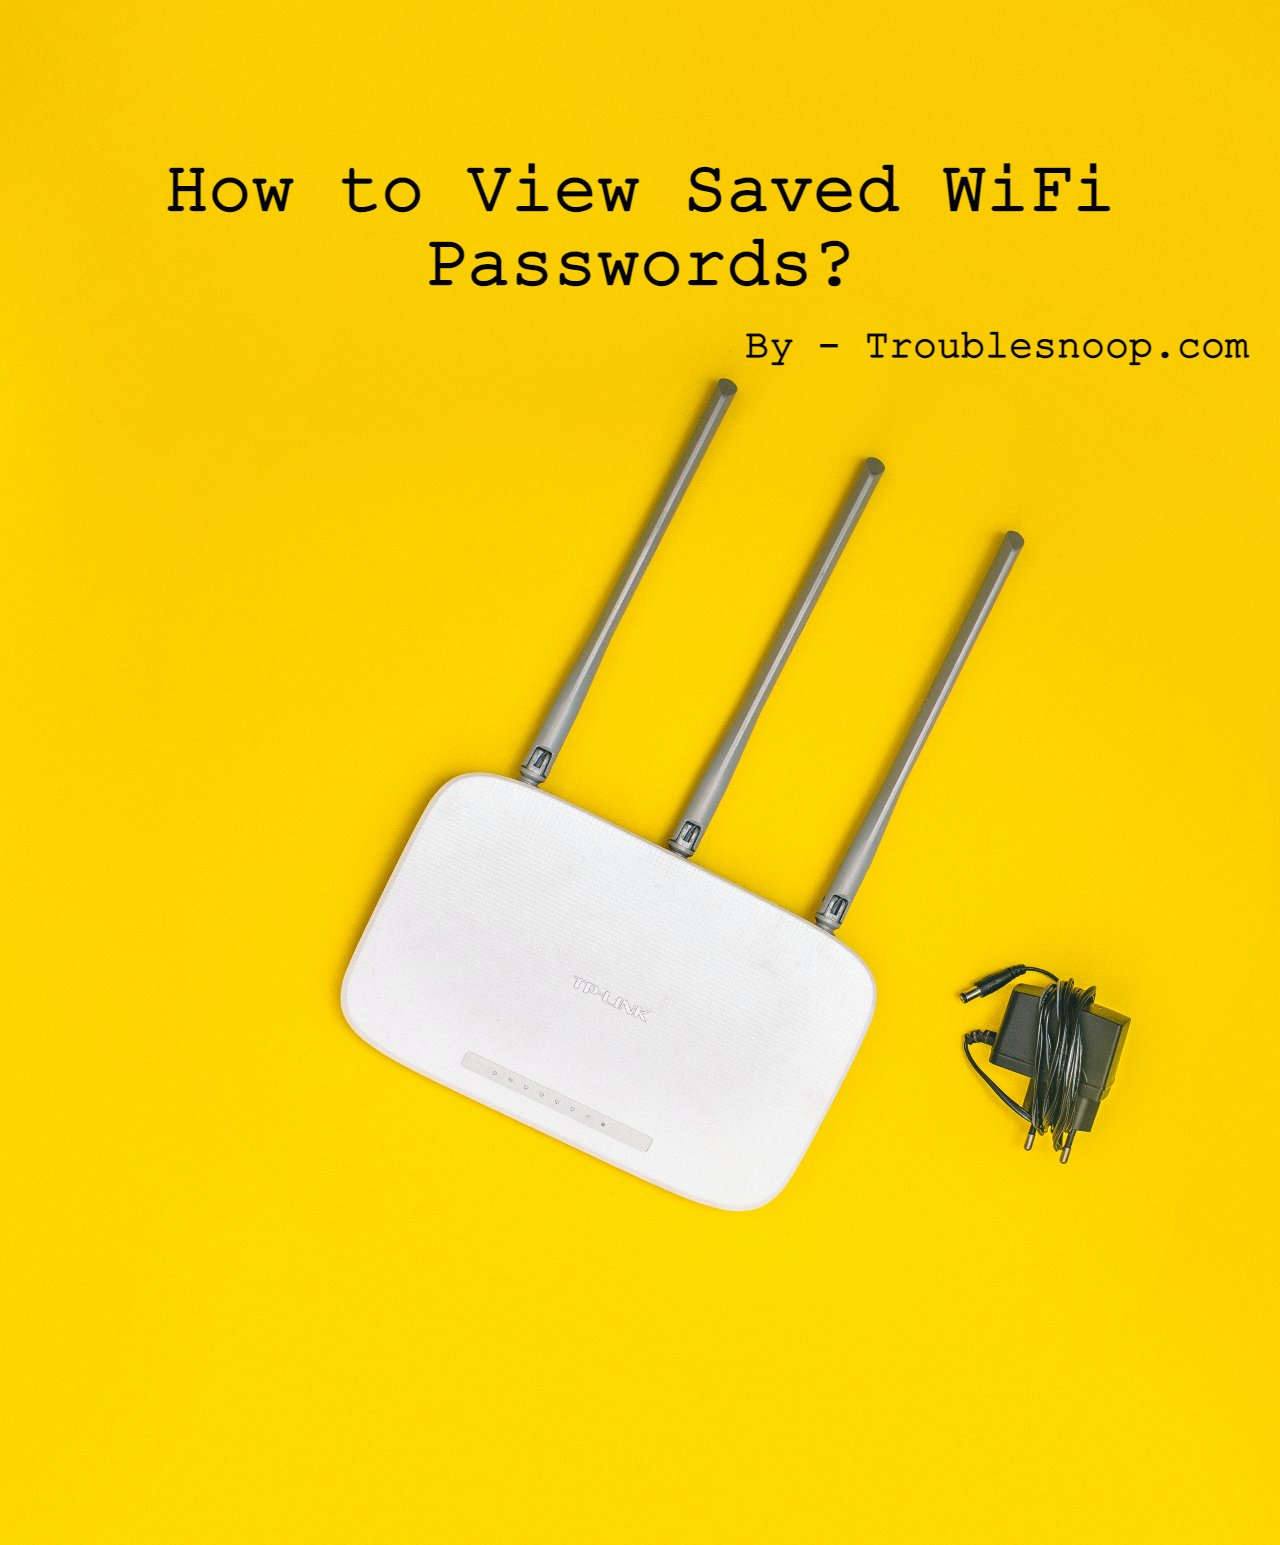 How to View Saved WiFi Passwords on Android, iOS Mobiles and Windows, macOS Laptops?